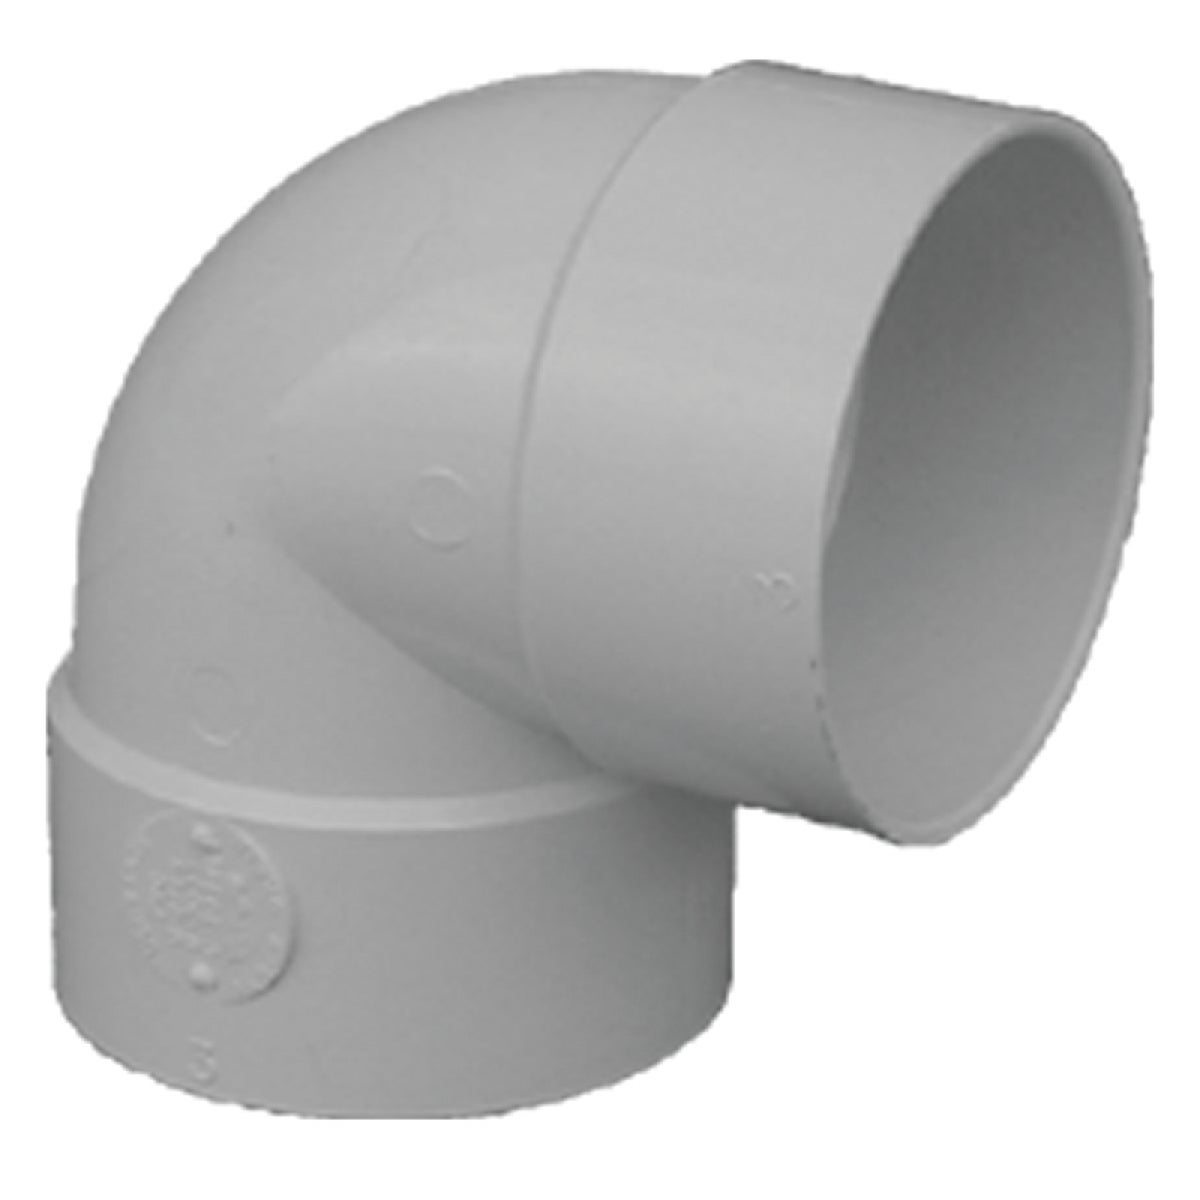 "4""90D S&D SHRT TRN ELBOW"